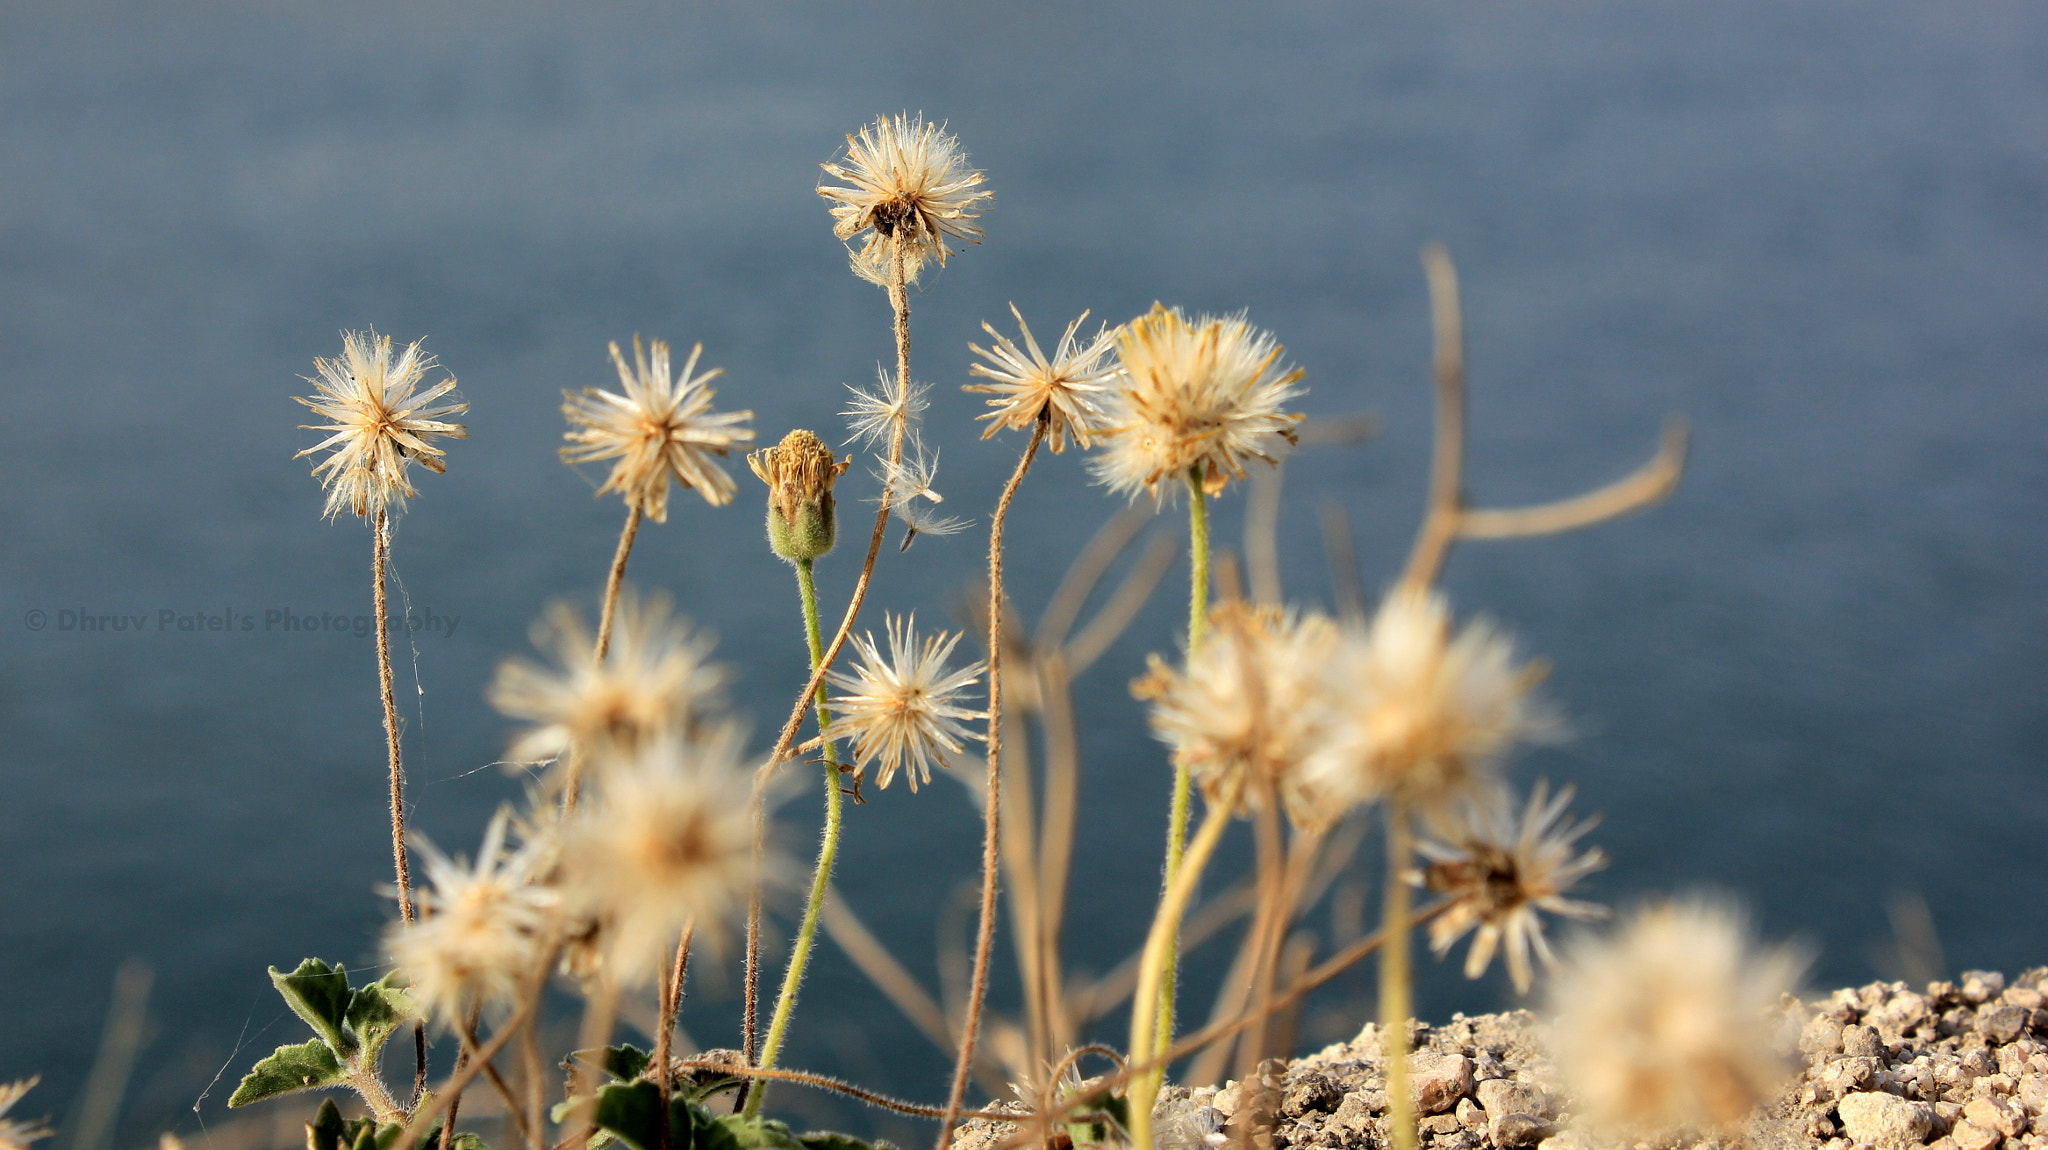 Photograph Flowers Near Narmada Canal by Dhruv Patel on 500px